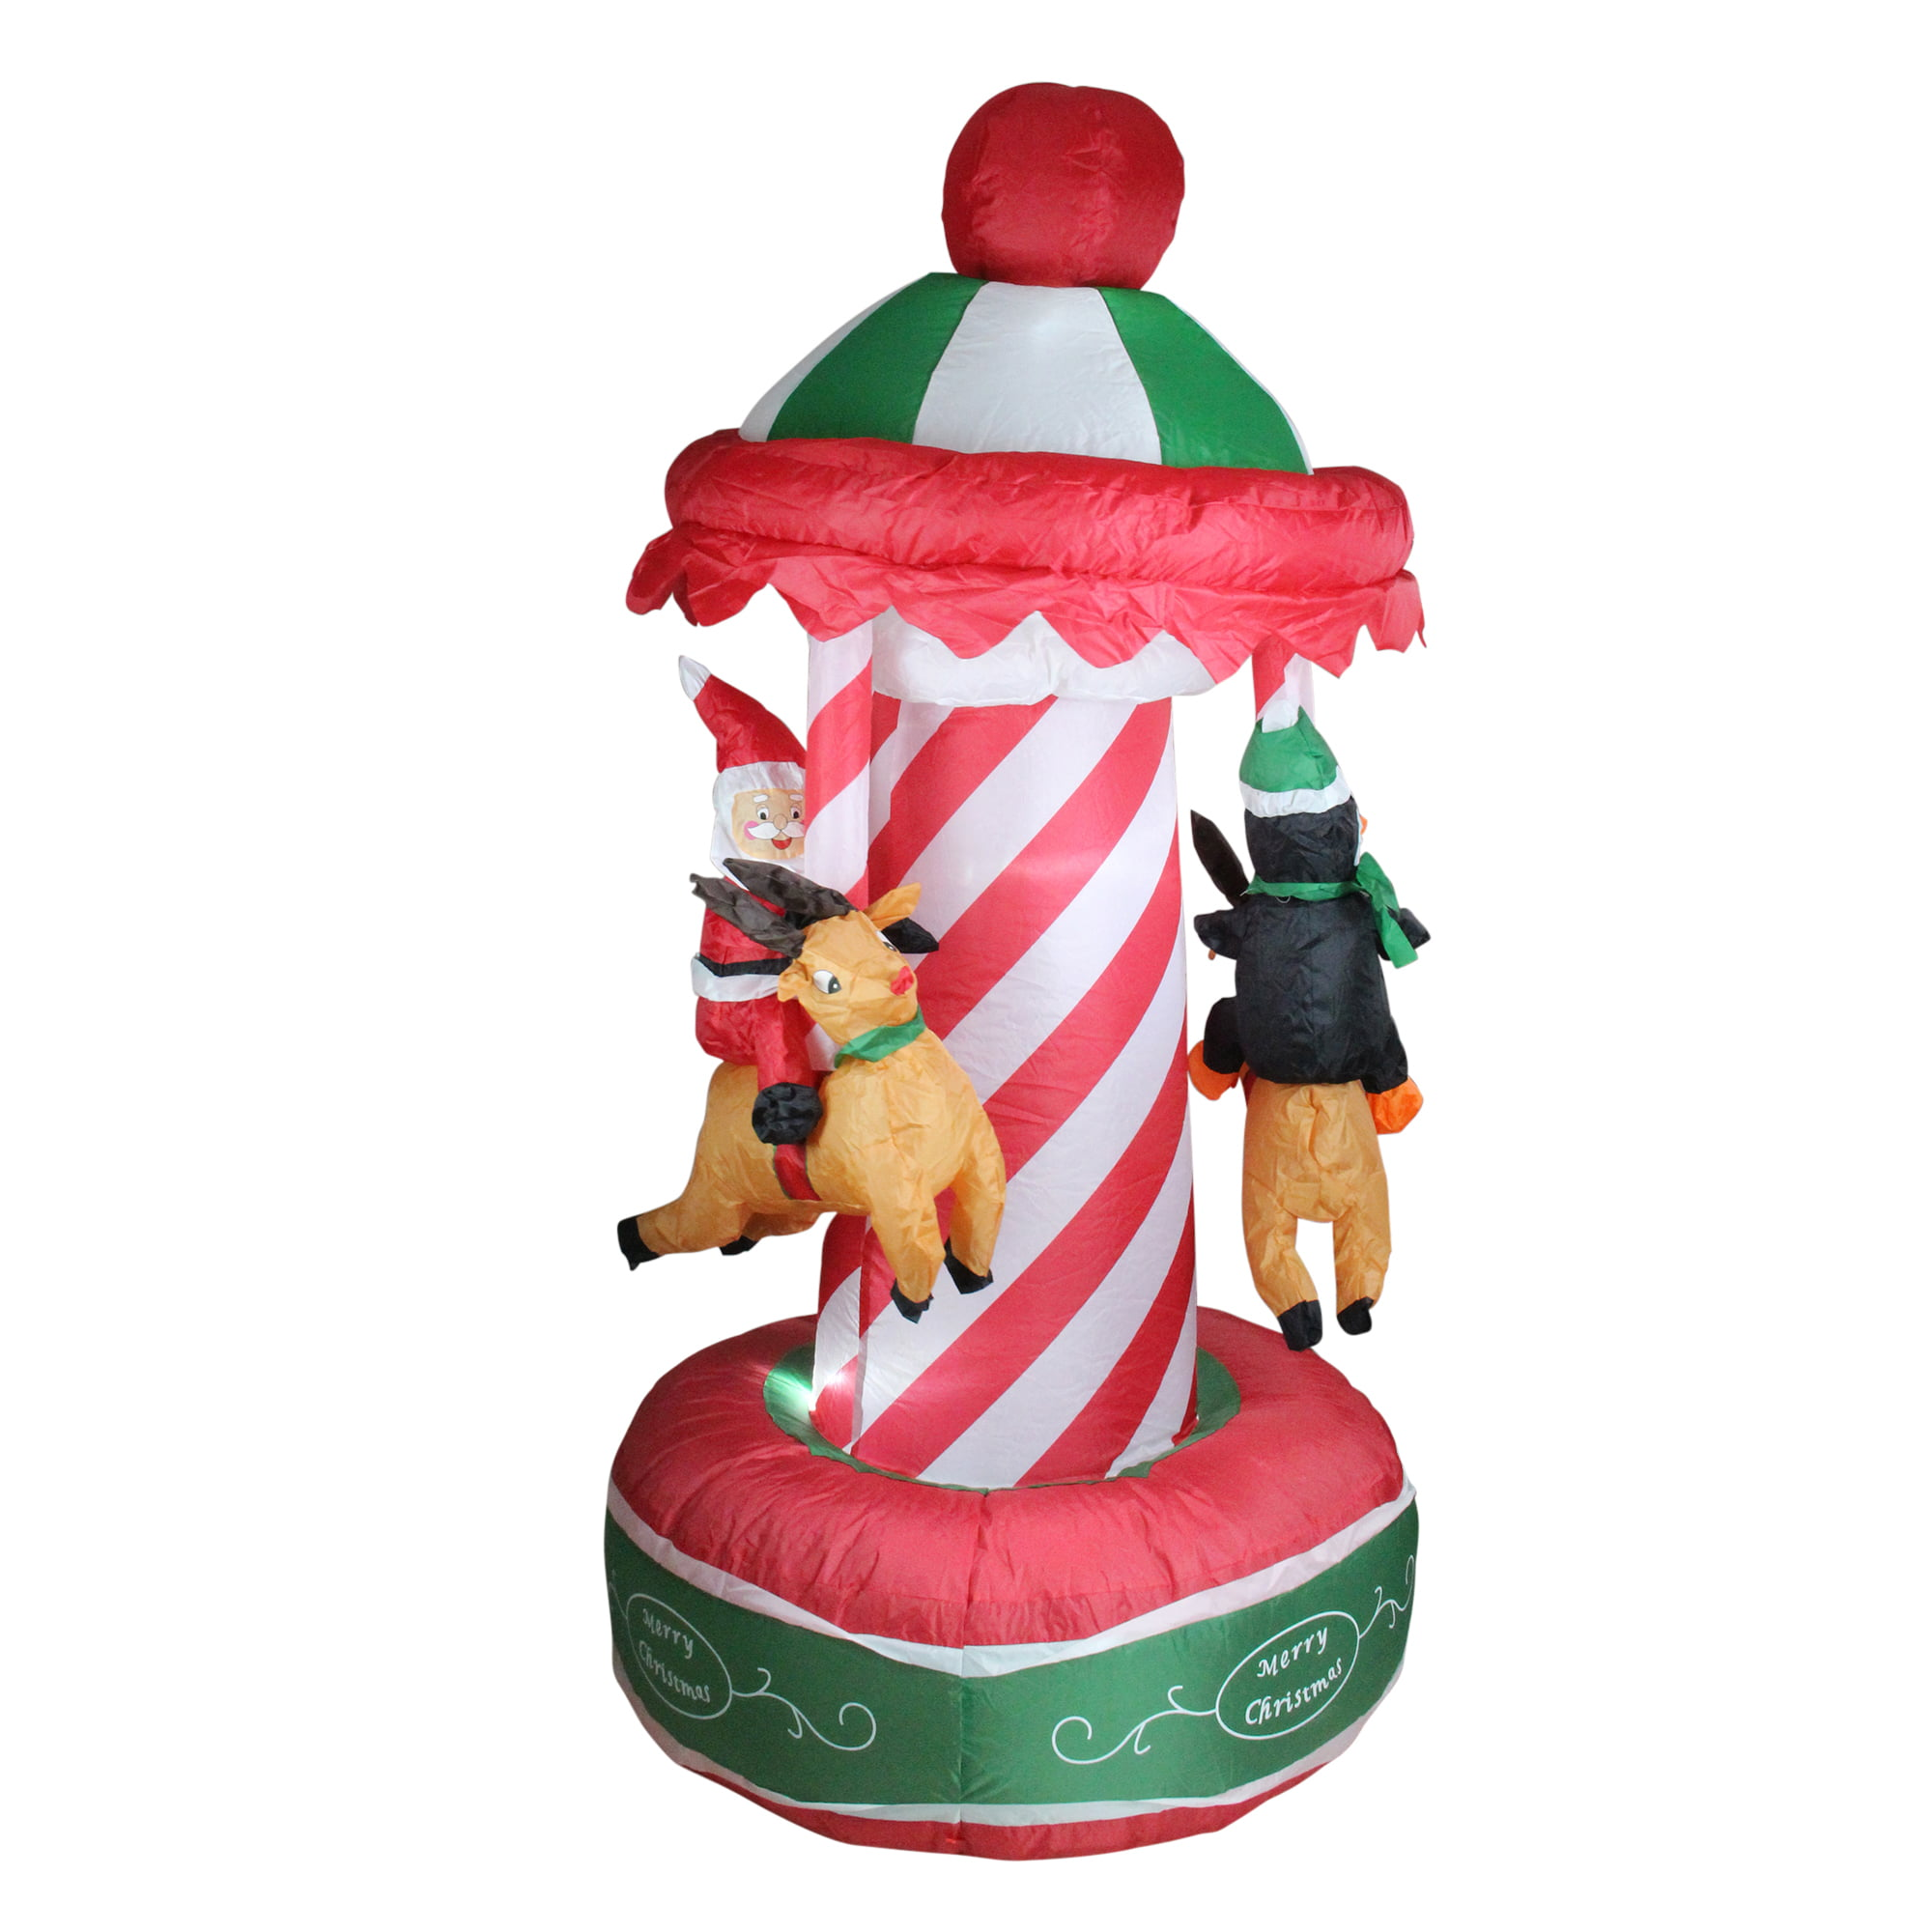 6.5' Inflatable Animated Christmas Carousel Lighted Yard ...